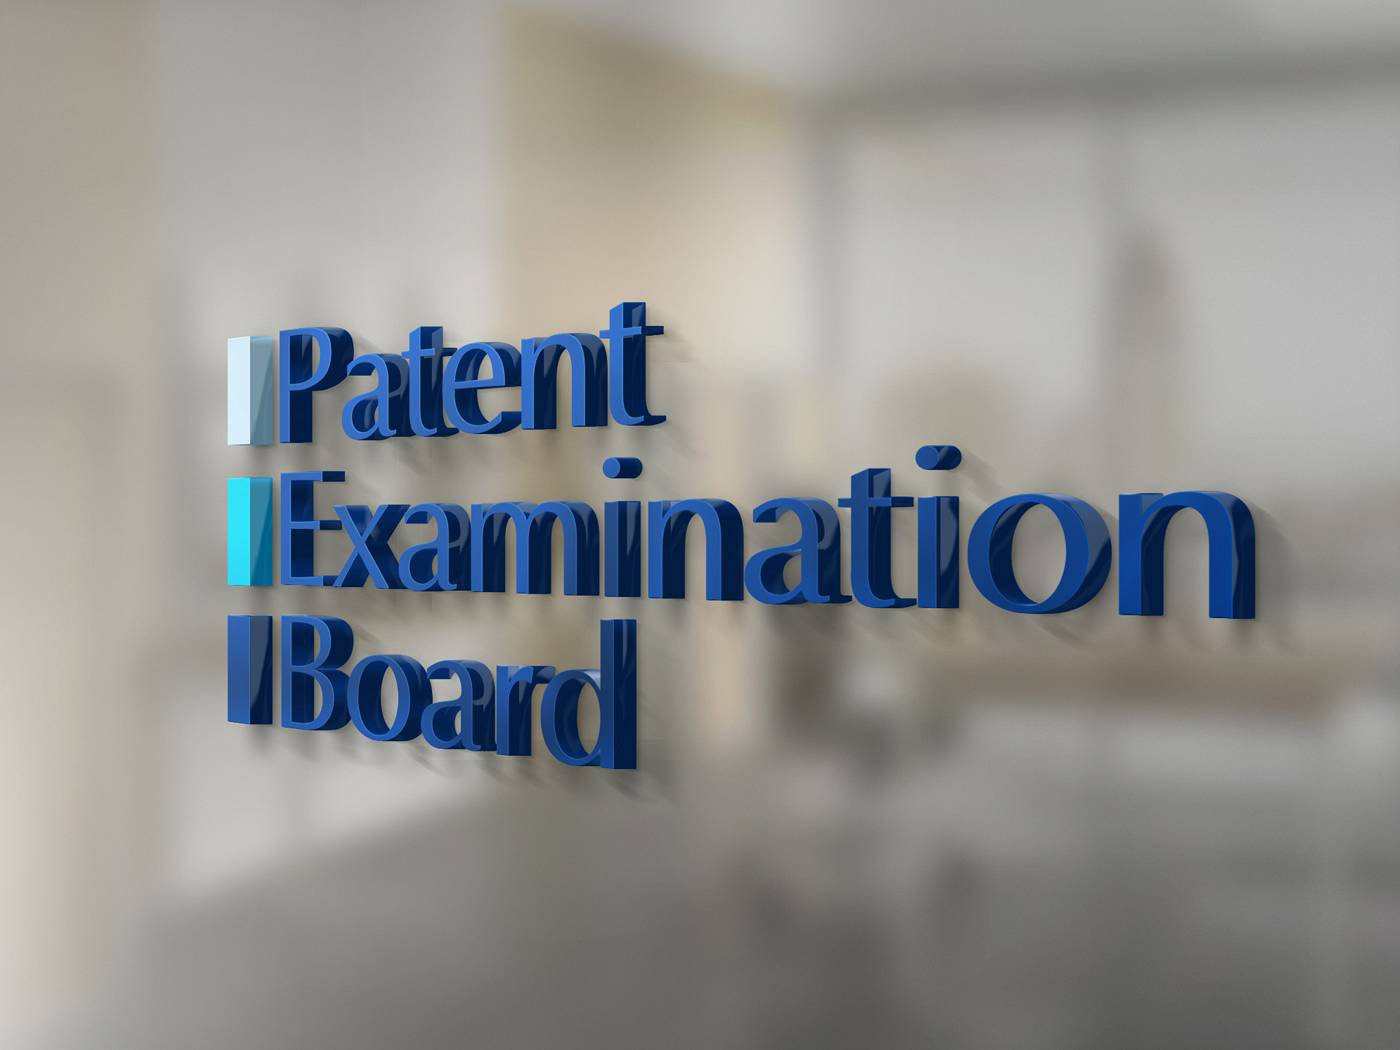 Patent Examination Board